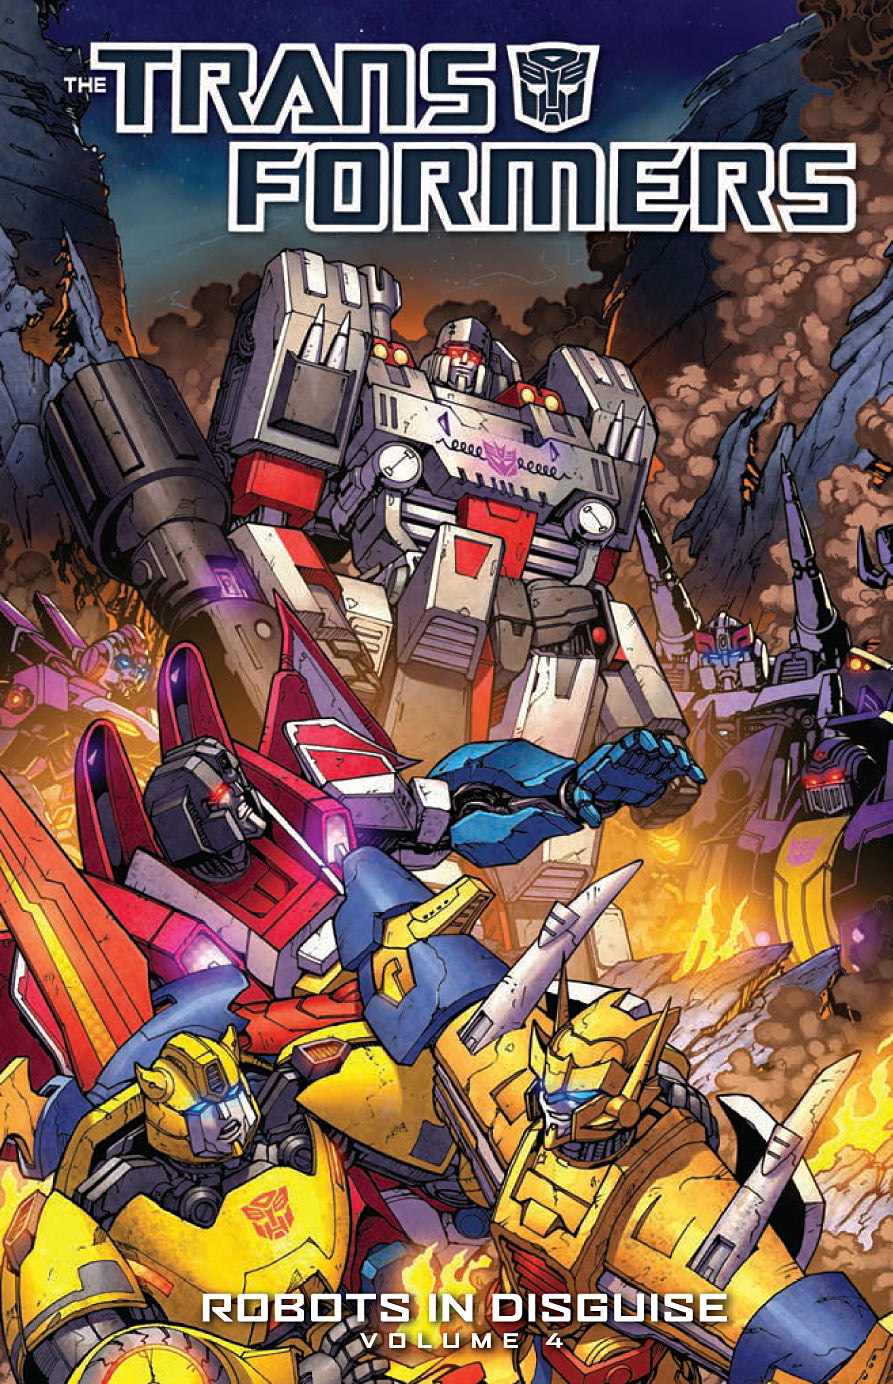 The Transformers: Robots in Disguise Vol. 4 TP